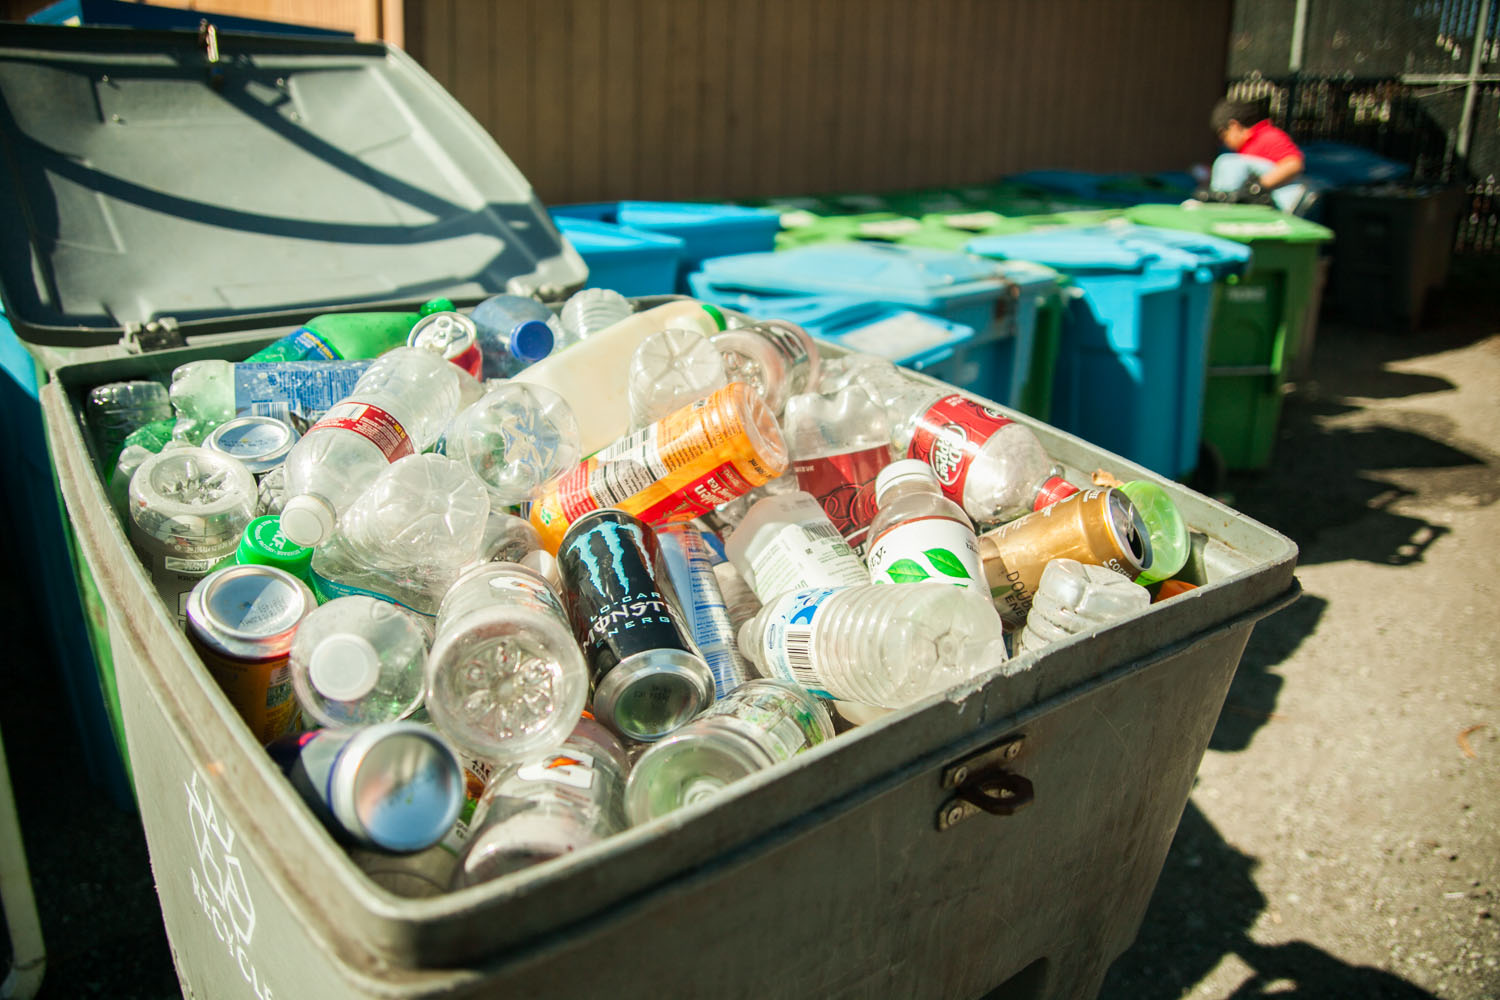 Plastic bottles and cans in a recycling bin at the City College Recycling Department, Ocean Campus on Wednesday, March 4. (Photo by Ekevara Kitpowsong)